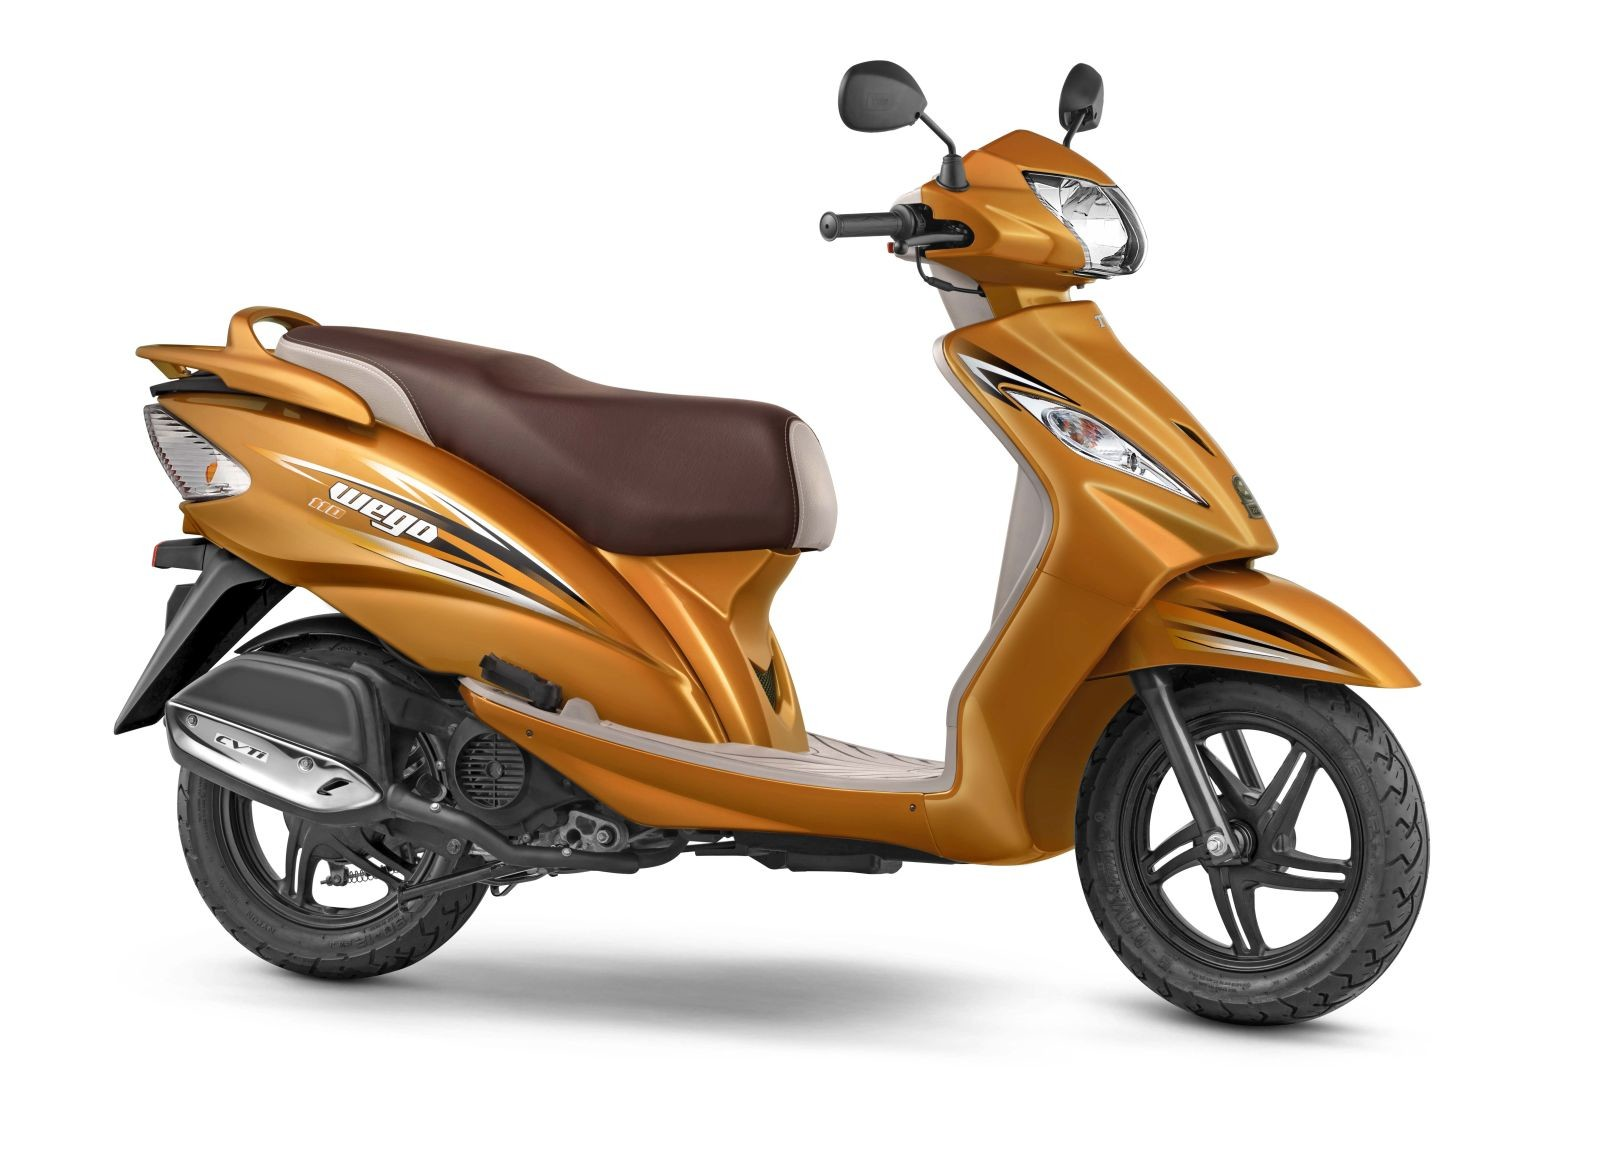 TVS-Wego-Metallic-Orange